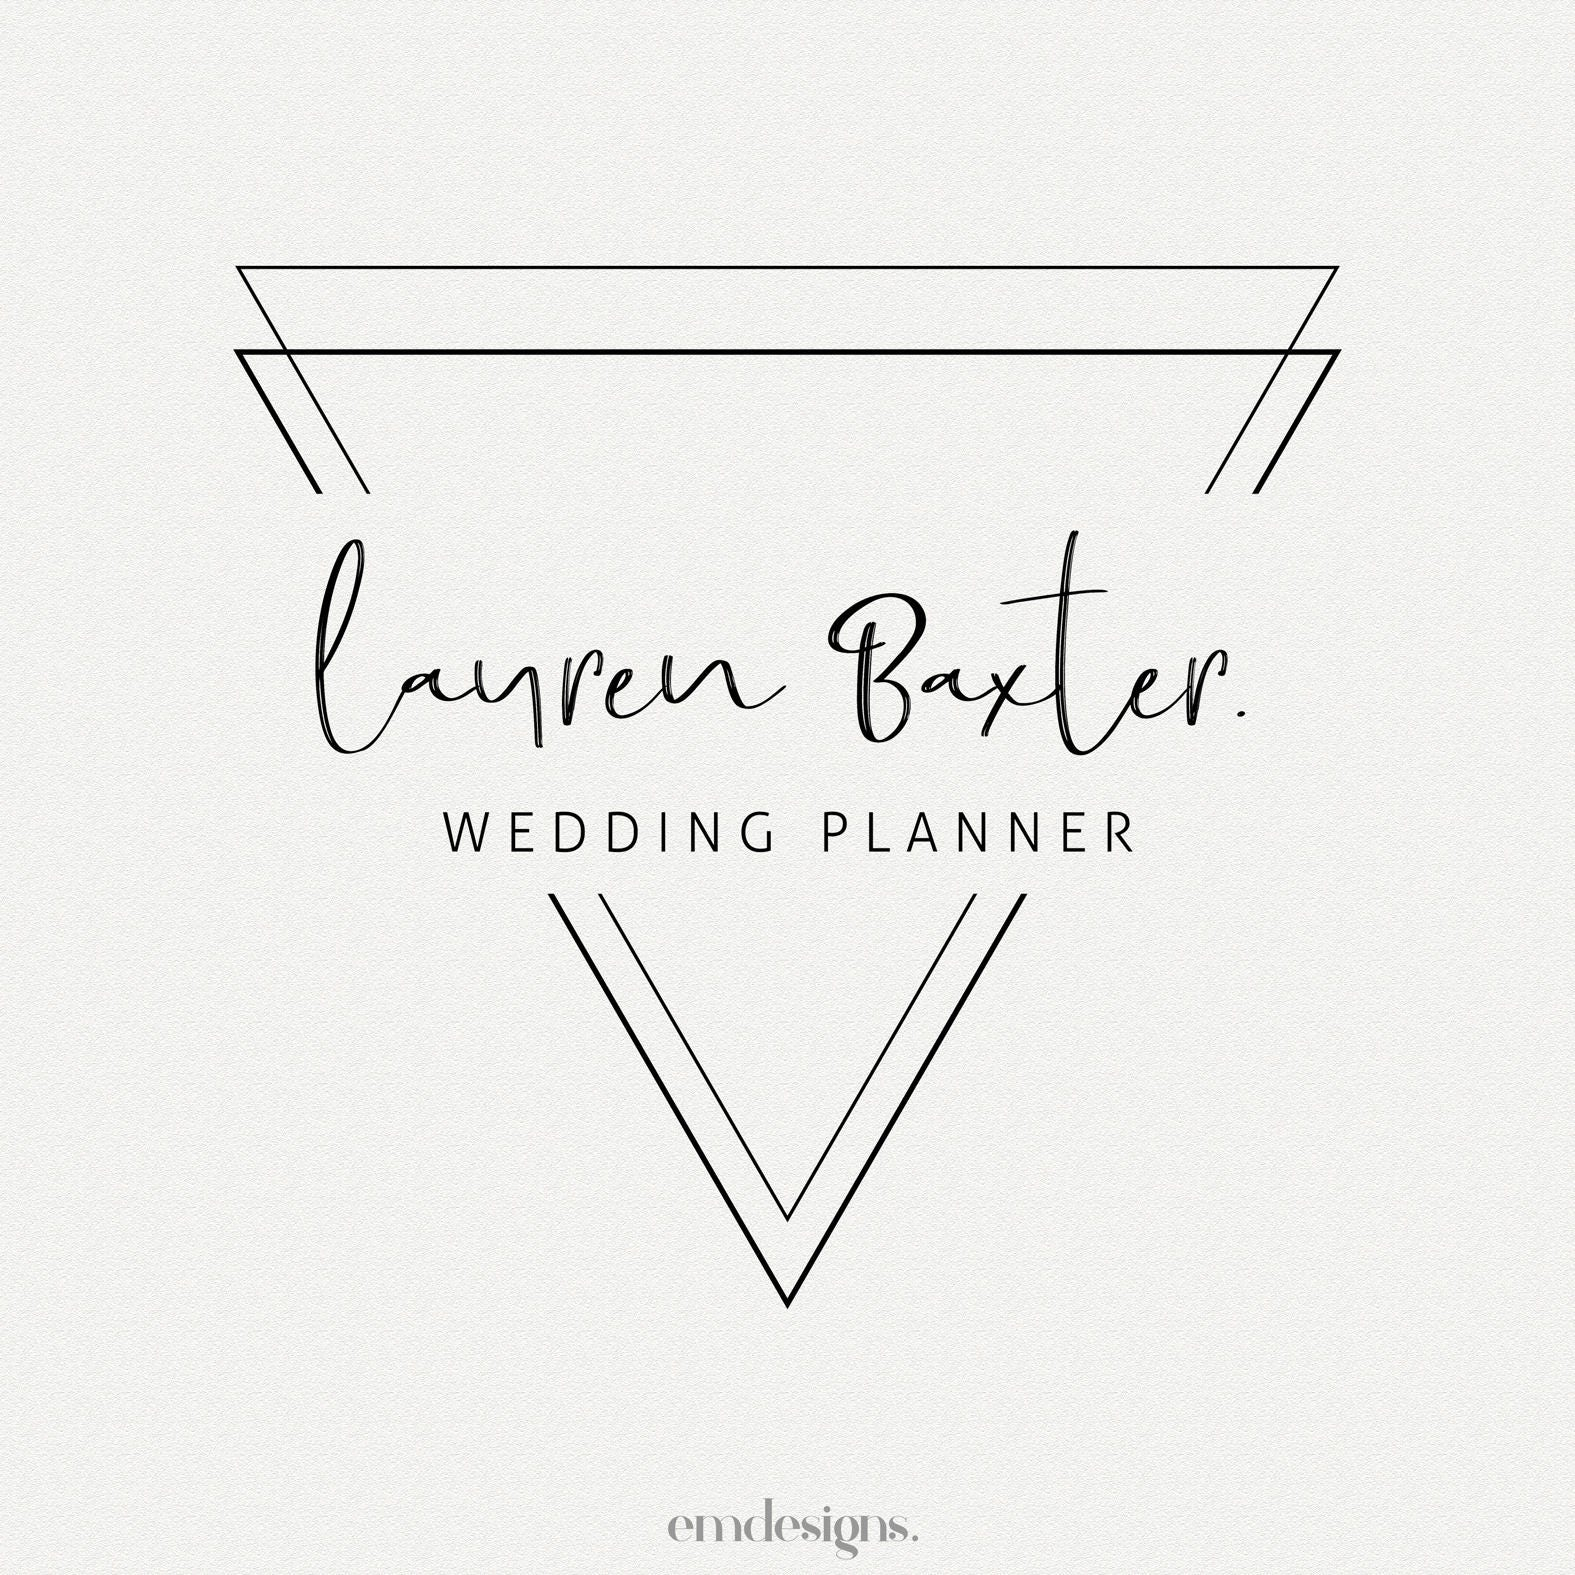 Triangle Minimalist Premade Logo Design Business Wedding Planner